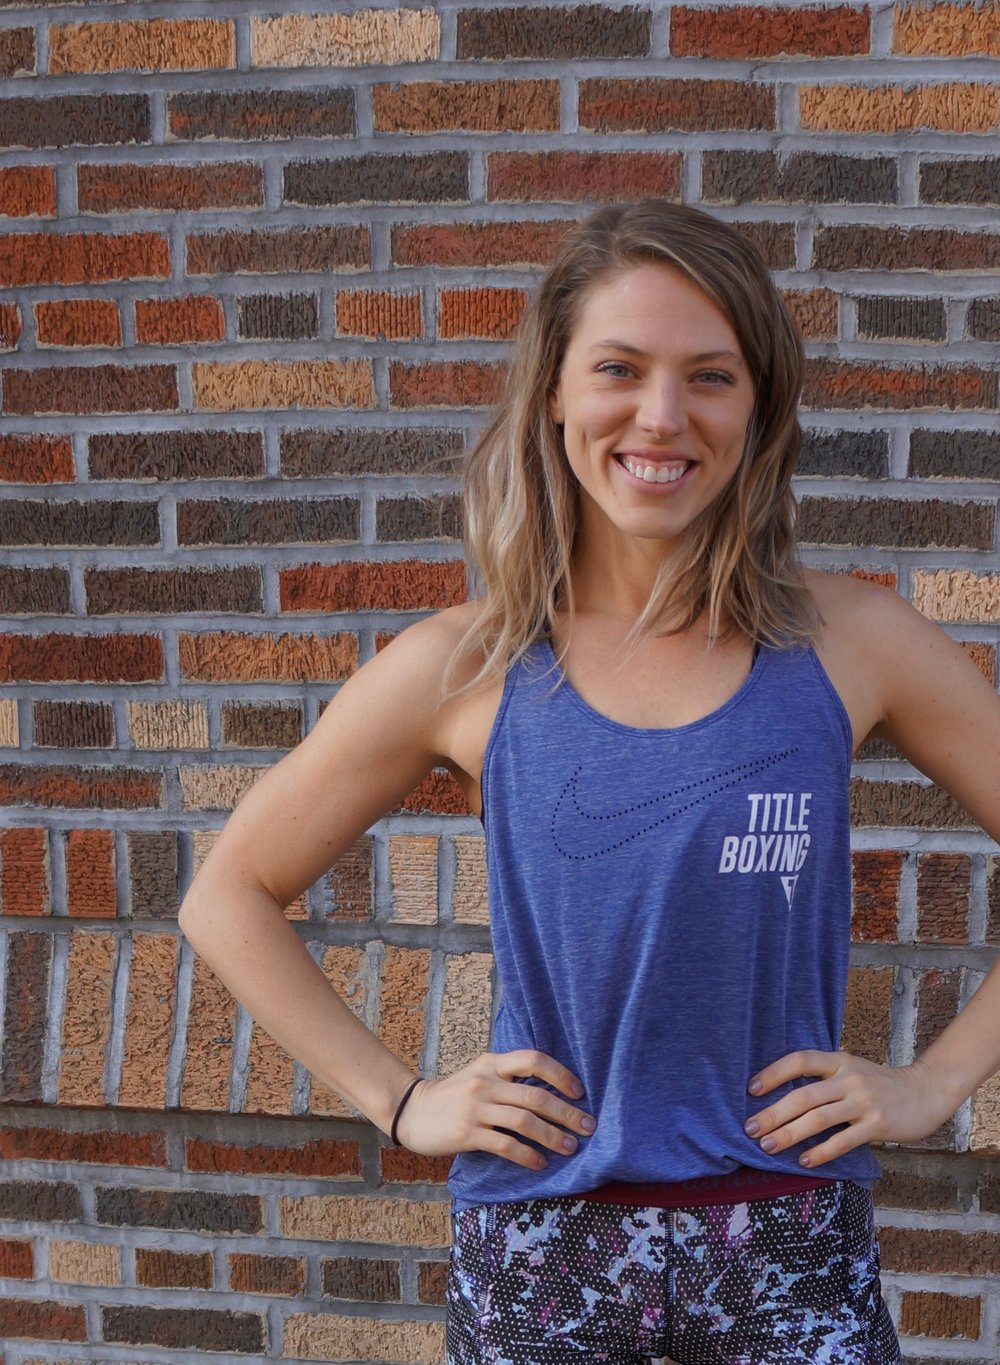 My name is Britta Whittenberg and I am a Wellness Weirdo. I started working out when I was a wee babe. I would go to the gym with my Dad growing up and just try out the random machines not having any idea what they did exactly. But over time I started to realize how good being active made me feel. I loved feeling strong and healthy. It became a way of life for me. A few years ago I took a job working as a Jedi at Disney's Hollywood Studios. This was a very physically taxing job as you can imagine. I fought Kylo Ren 5 times a day, outside, in the FL heat. In order to remain strong and healthy, I started taking classes through Upstrength fitness (upstrengthfitness.com). This is my dear friend, Elizabeth Stacey's fitness business in Florida. She had lived in New York for years and is one of Mark Fisher Fitness' first coaches. I was so inspired by her and her outrageously fun and unapologetic coaching style. I would go to all of her Kettlebell, HIIT, and Strength Training classes. I soaked up everything like a darn sponge and became obsessed. For the next year and a half following, I enrolled every month in Upstrength's monthly fitness and nutrition program, Lift Lab. This solidified my love for all things health and wellness. I started to realize that maybe this was more of a passion than a hobby. People started approaching me about my fitness more and more and I found myself wanting to share more and more. So I took the plunge and became a Certified Personal Trainer through NASM (National Academy for Sports Medicine).For the past several years I have been honing my skills of training people in ways that meet their specific needs. I have created specialized workouts for clients in preparation for weddings, in between performance jobs and through Skype sessions. I do in person trainings, as well as remotely, so I am always within reach. I have always helped my friends and family to achieve their health and wellness goals. I have also been on my own wellness journey of d